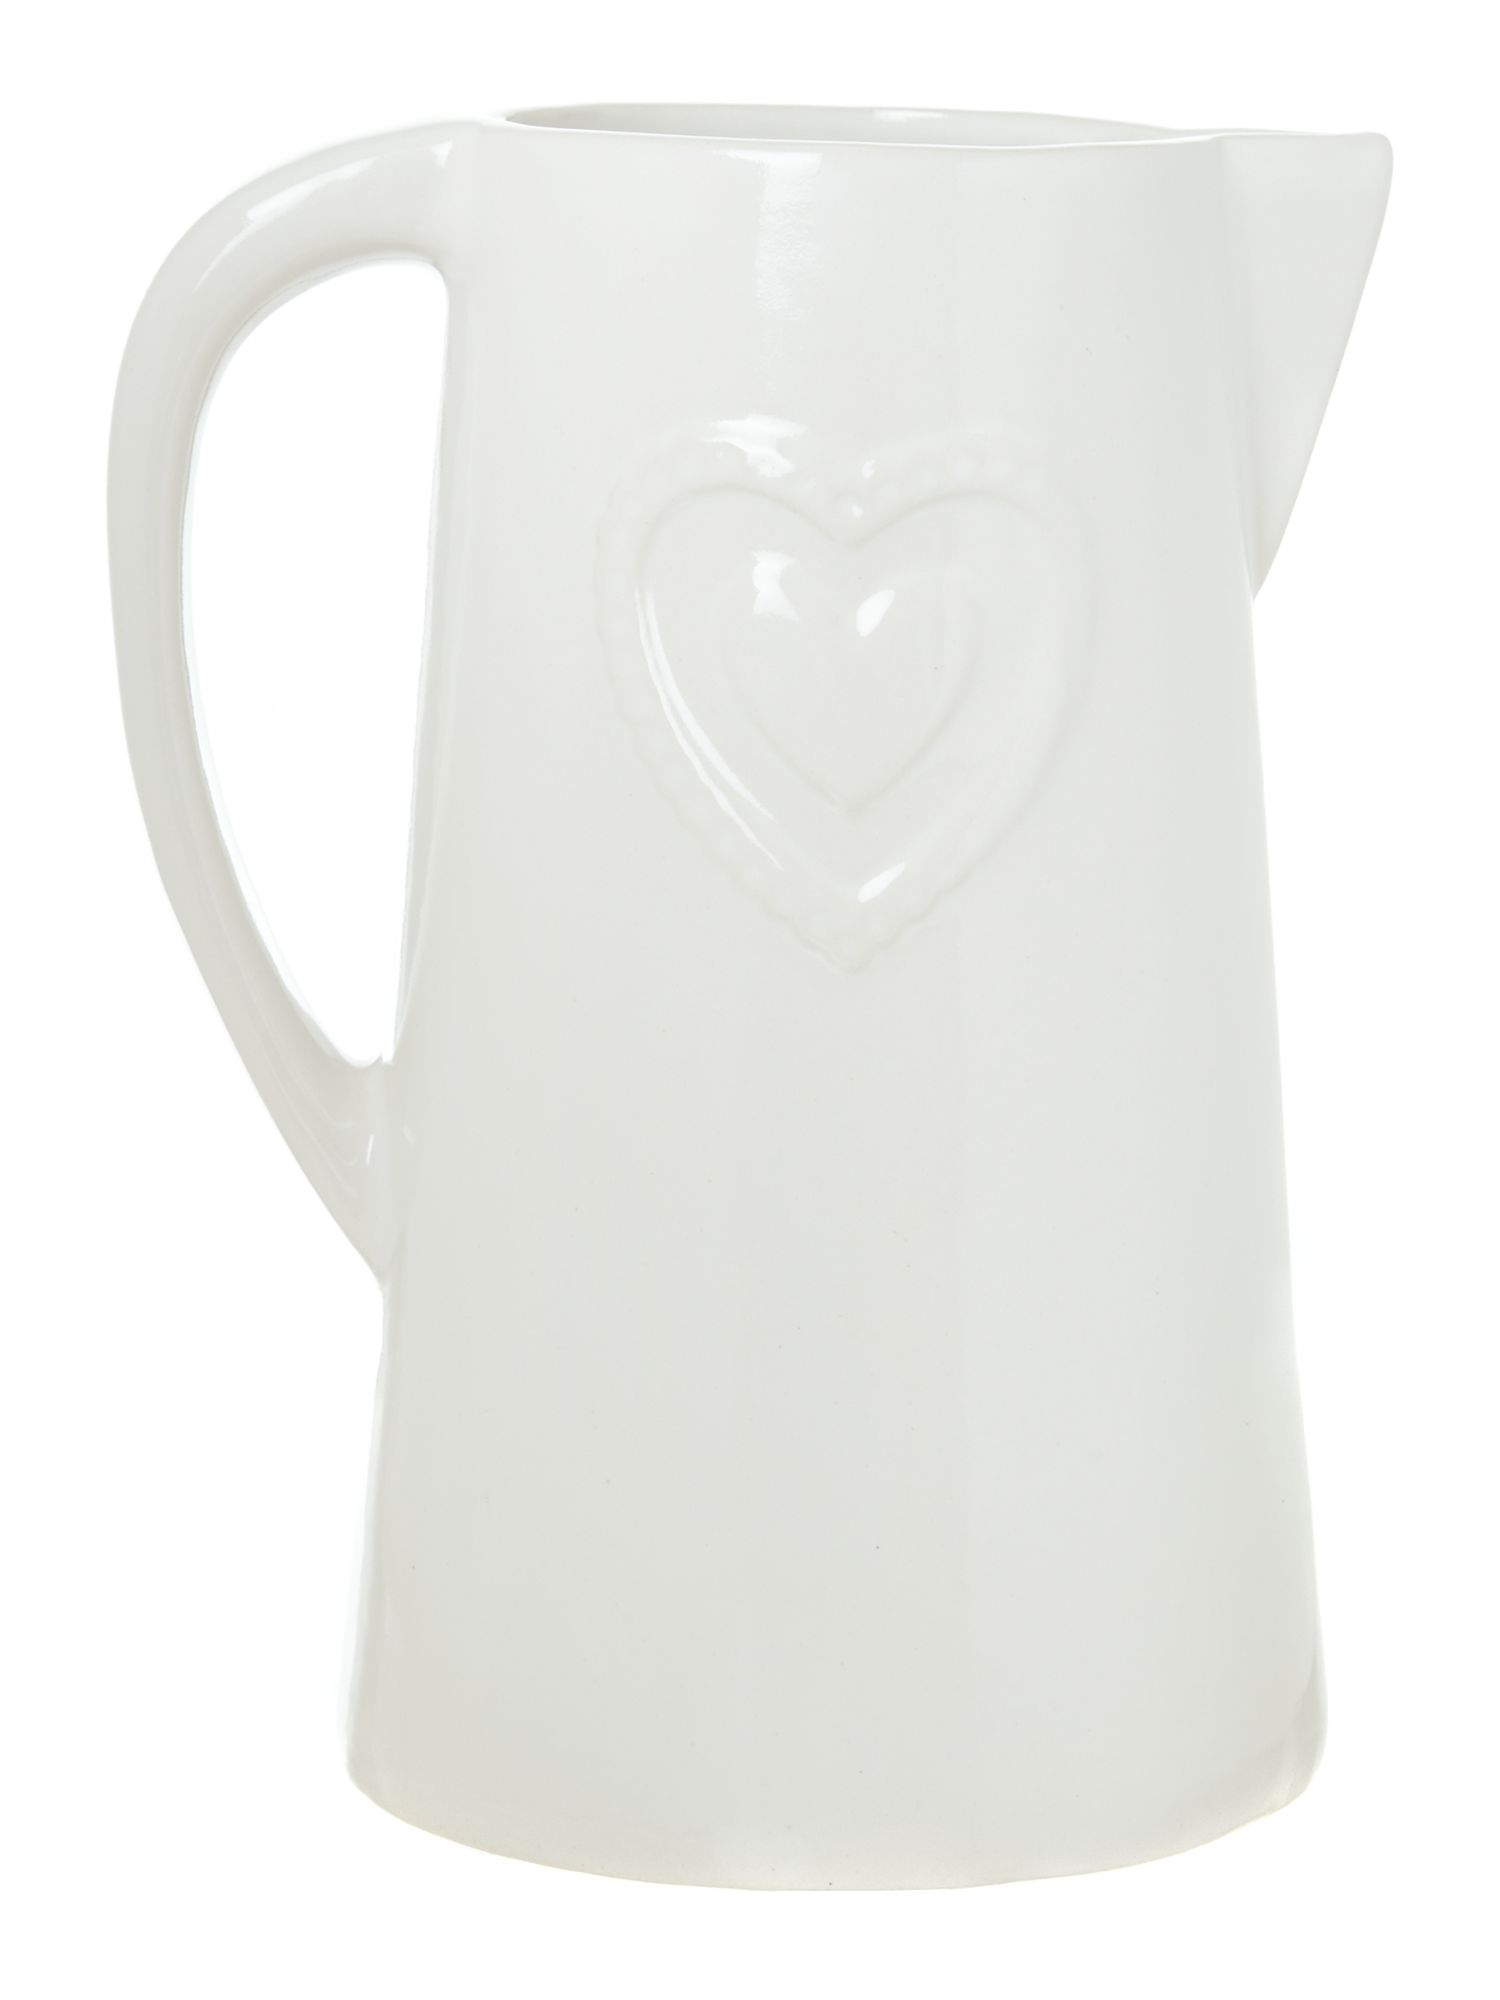 Jugs with embossed heart